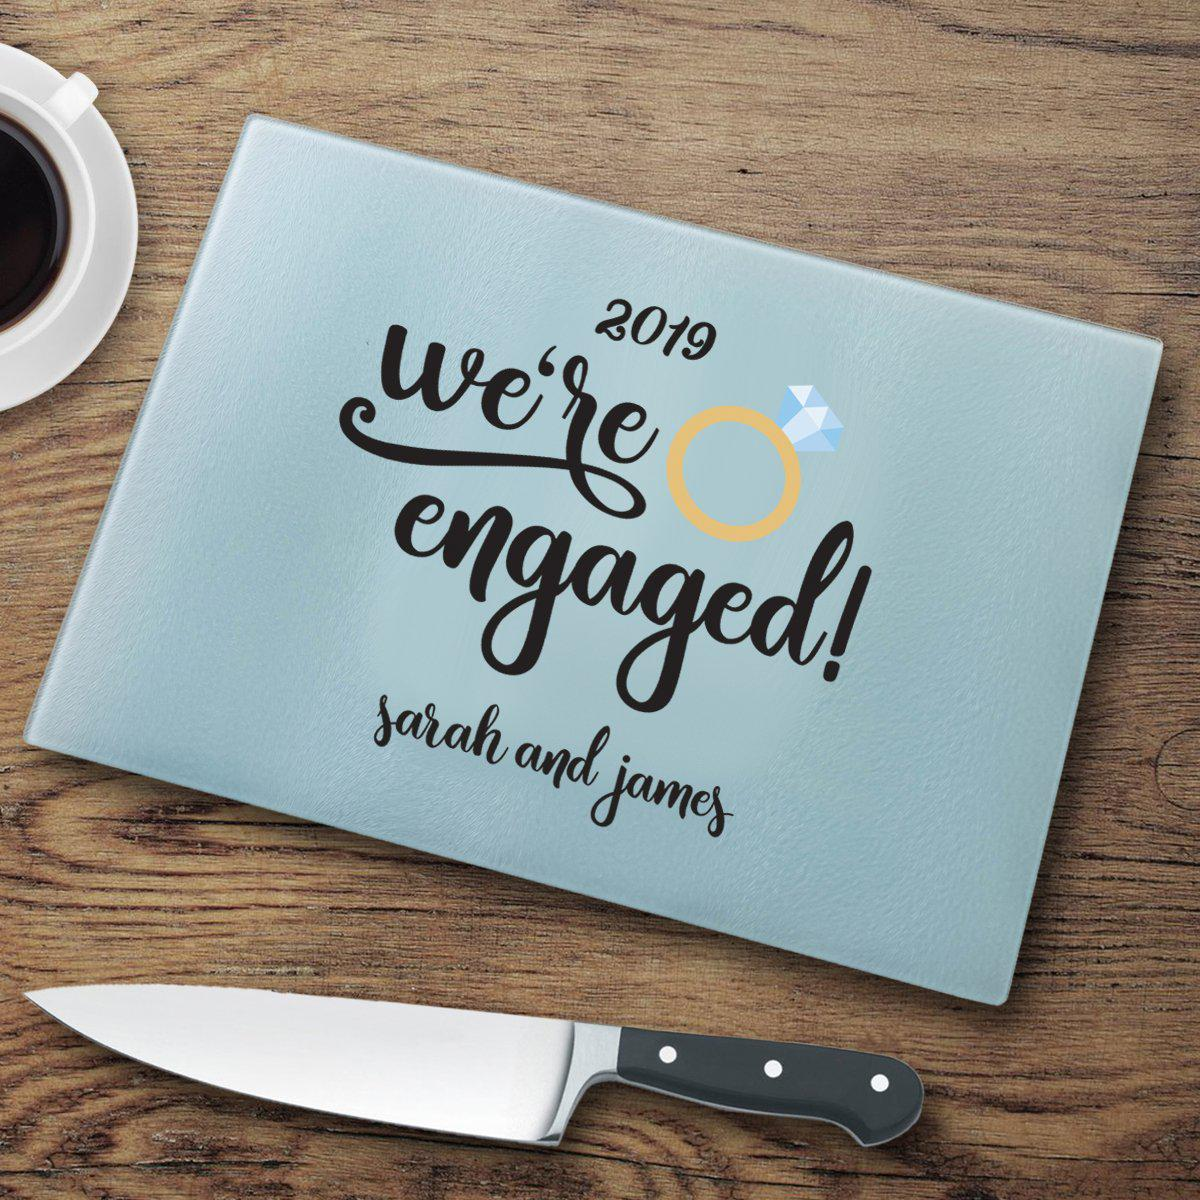 We're Engaged Personalized Glass Cutting Board